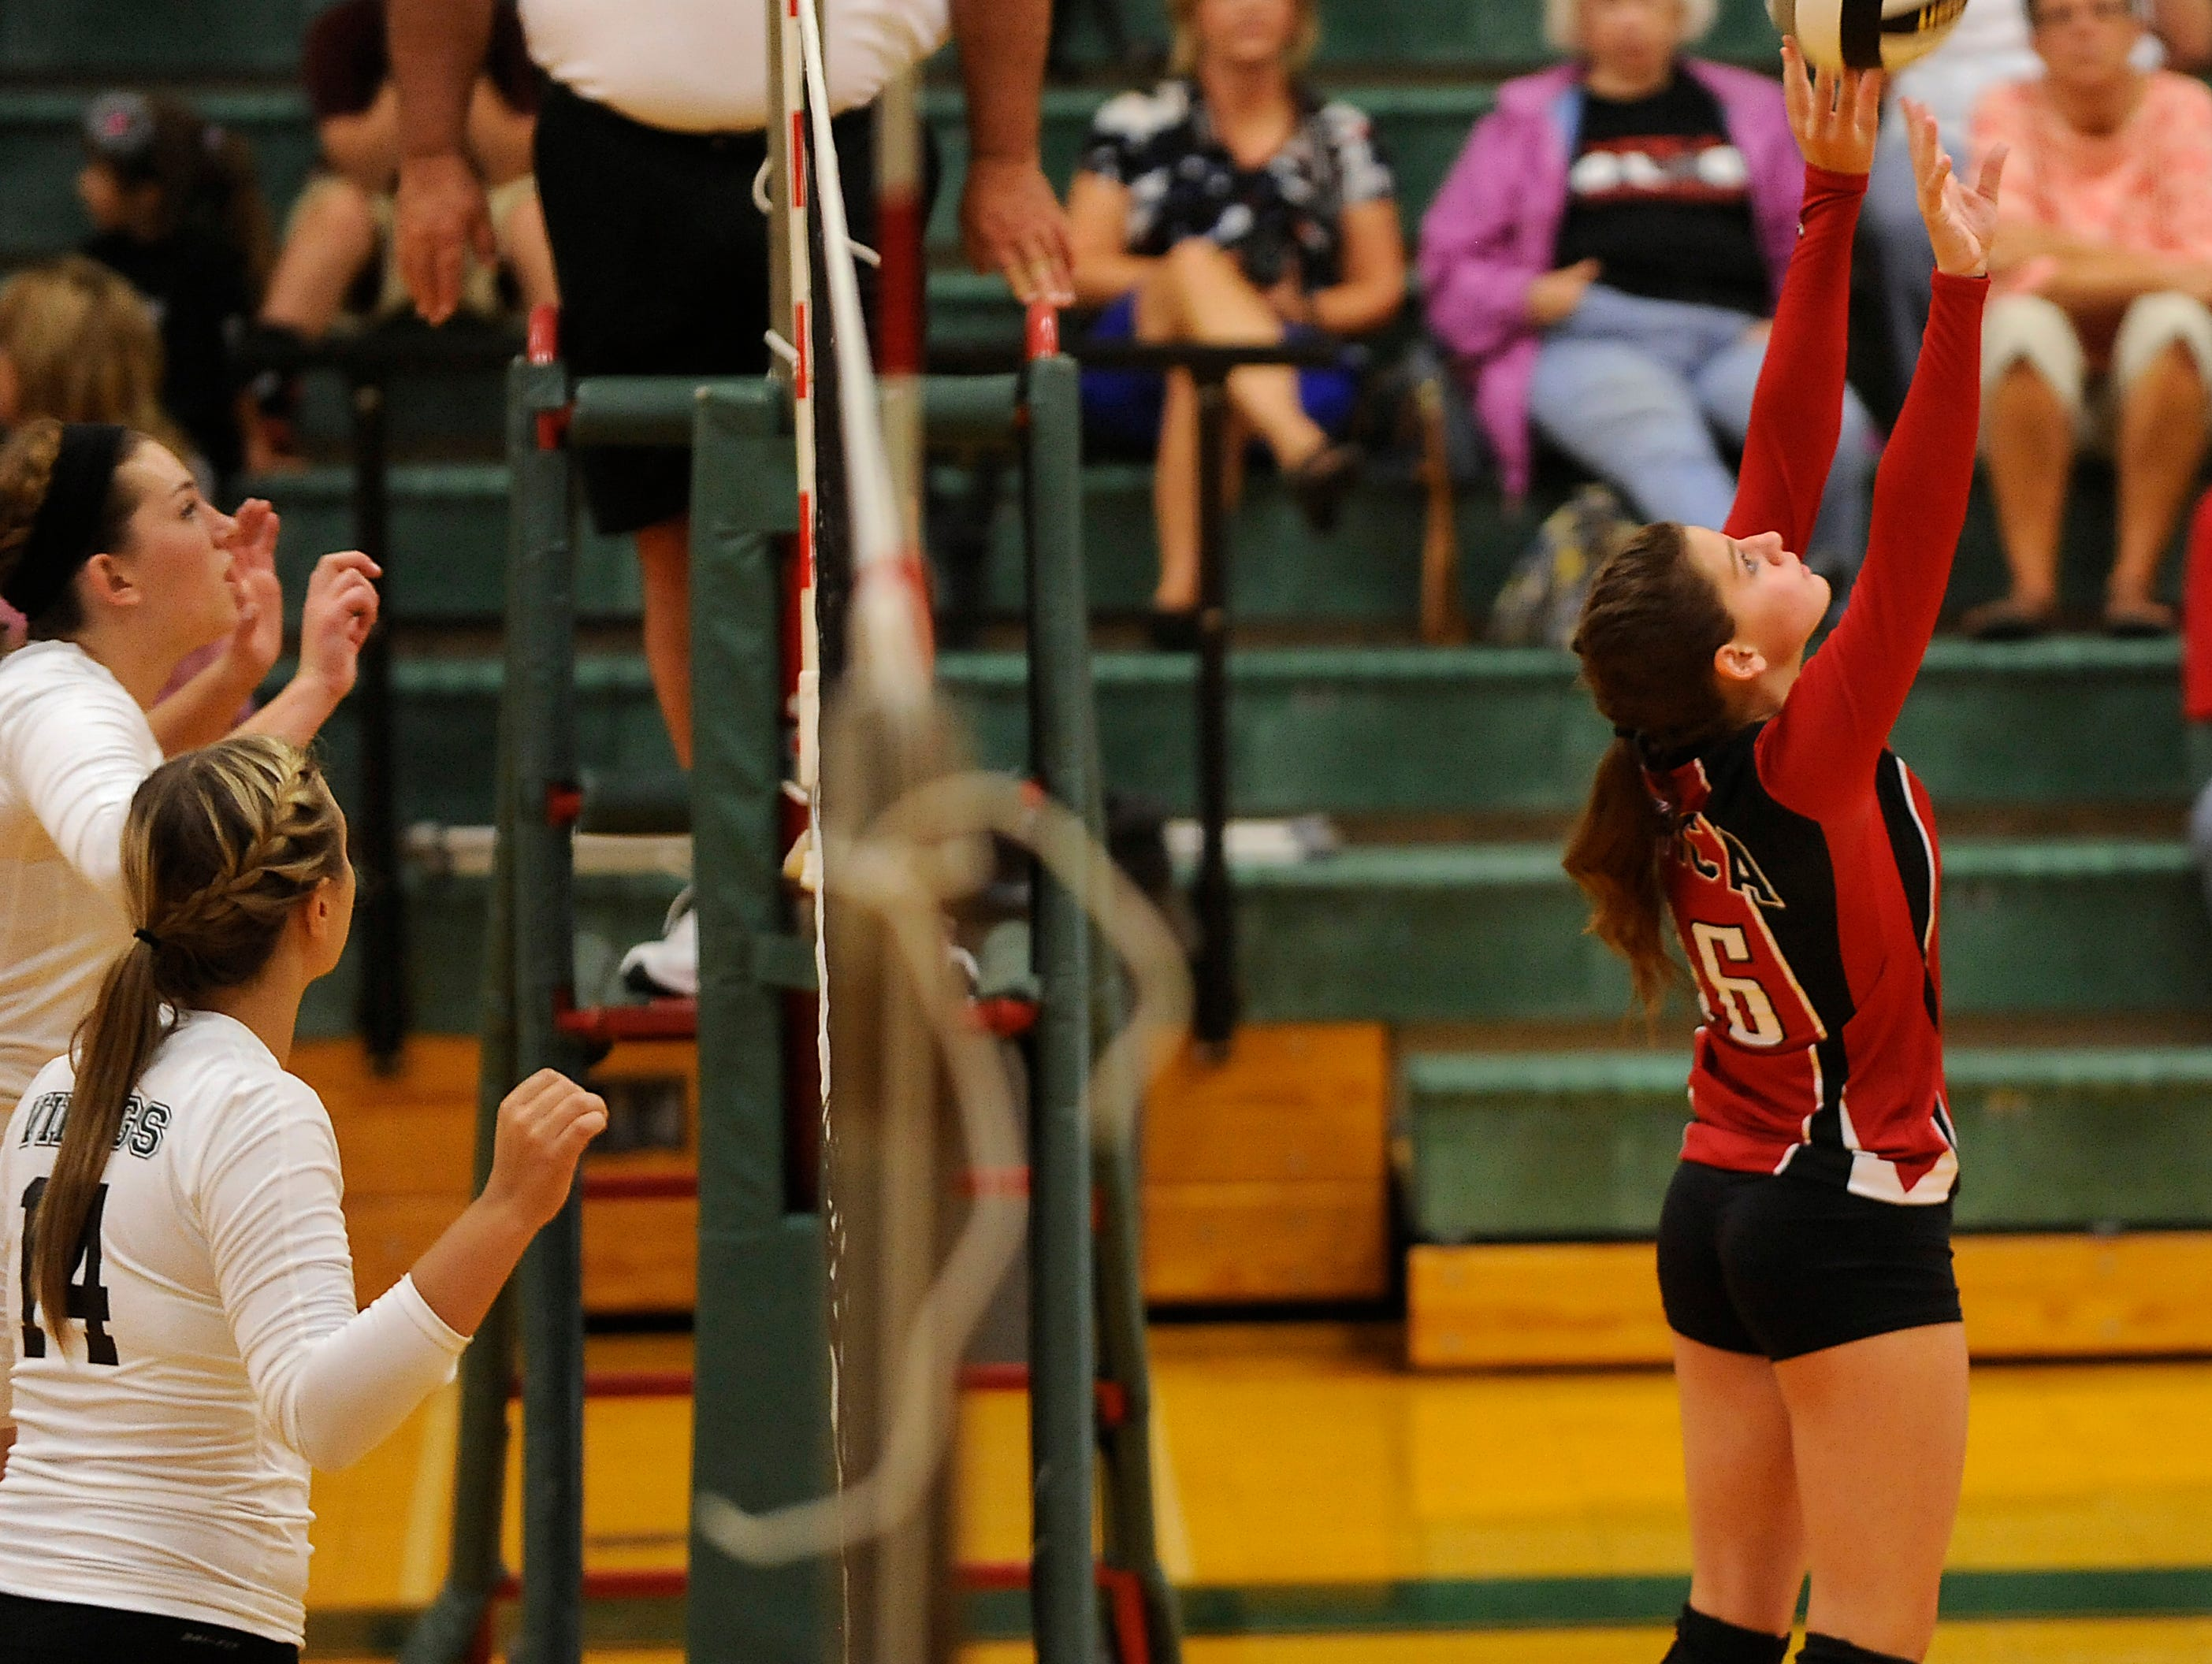 Northridge's Savannah Legg and Jamie Swickard prepare to block as Utica's Brooke Maxwell sets up a teammate for a hit during Thursday's Licking County League match.